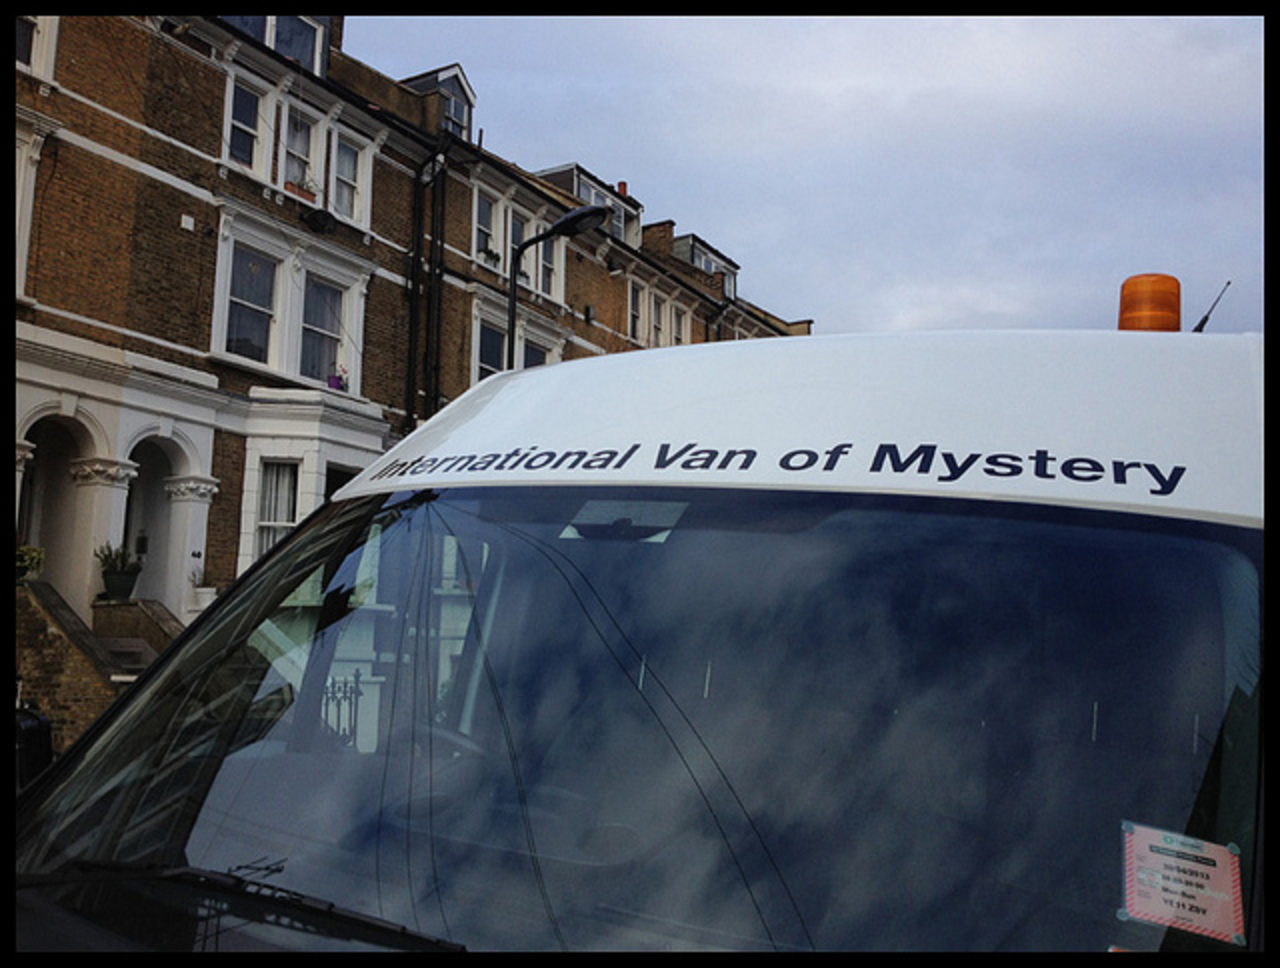 337. International Van of Mystery | Flickr - Photo Sharing!